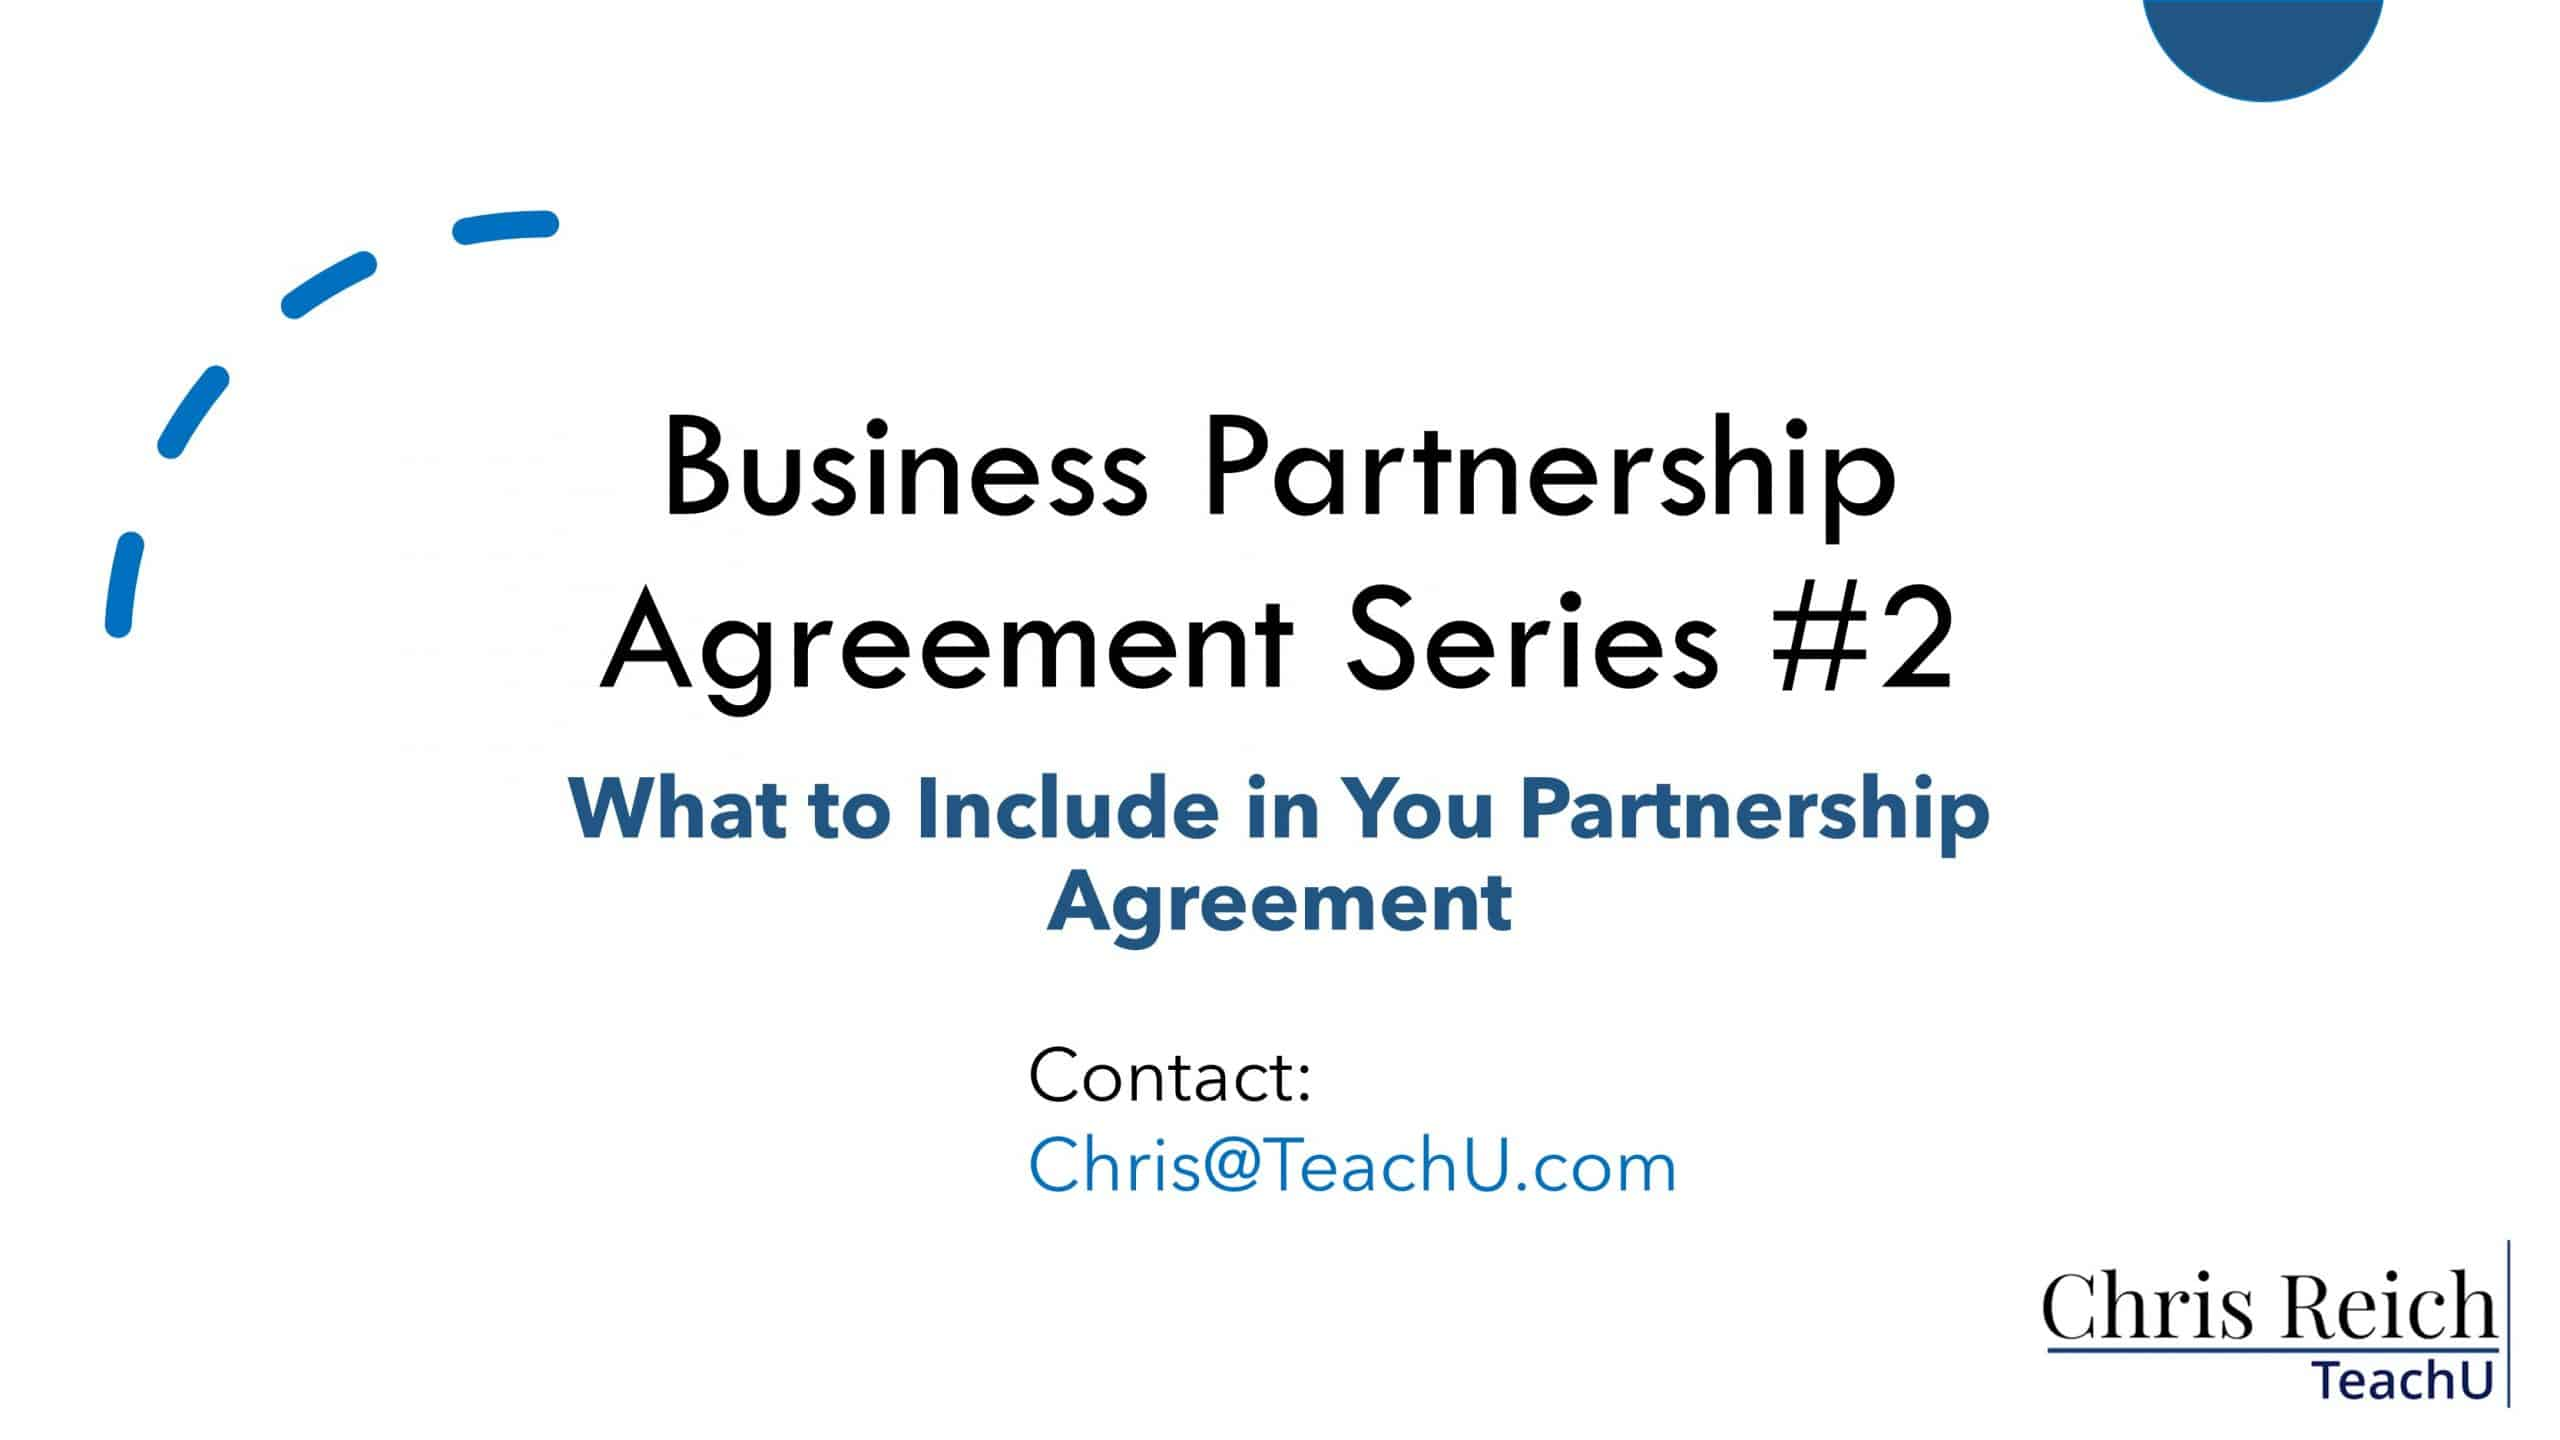 What You Should Include in Your Business Partnership Agreement